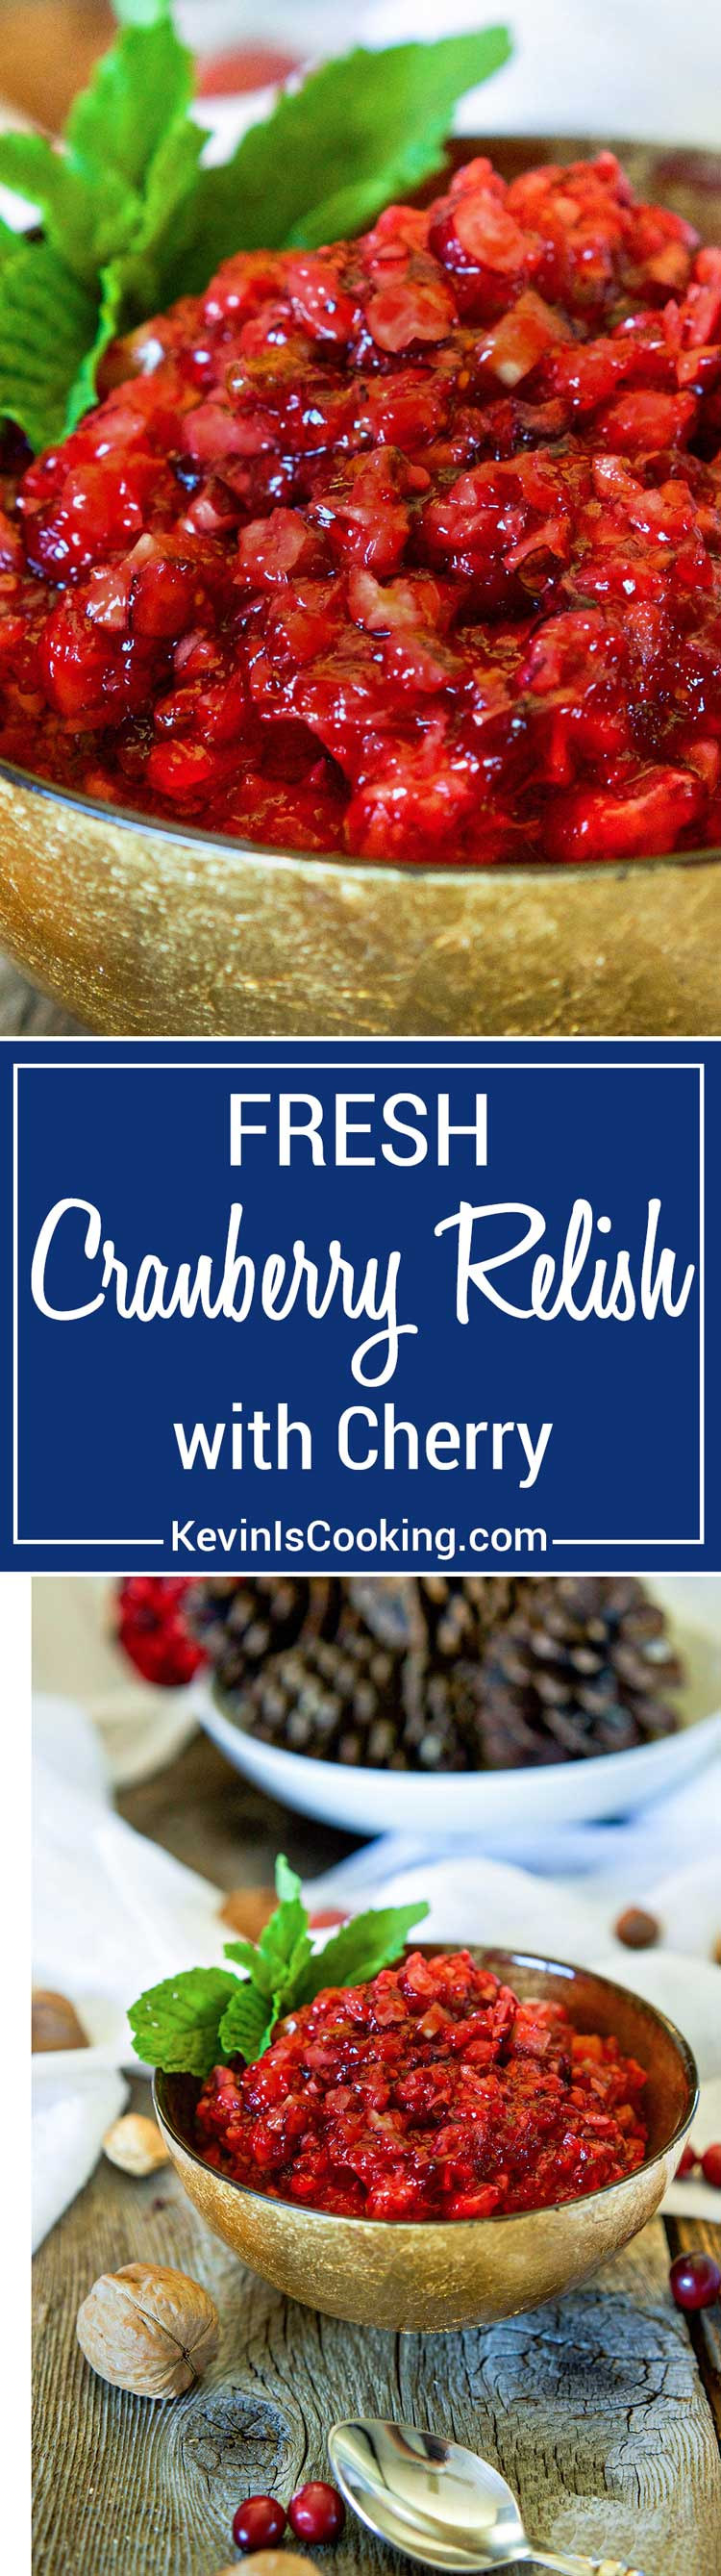 Fresh Cranberry Sauce with Cherry starts with fresh cranberries, orange, celery, pecans and walnuts. The secret flavor weapon is cherry jello. A great flavor combo!